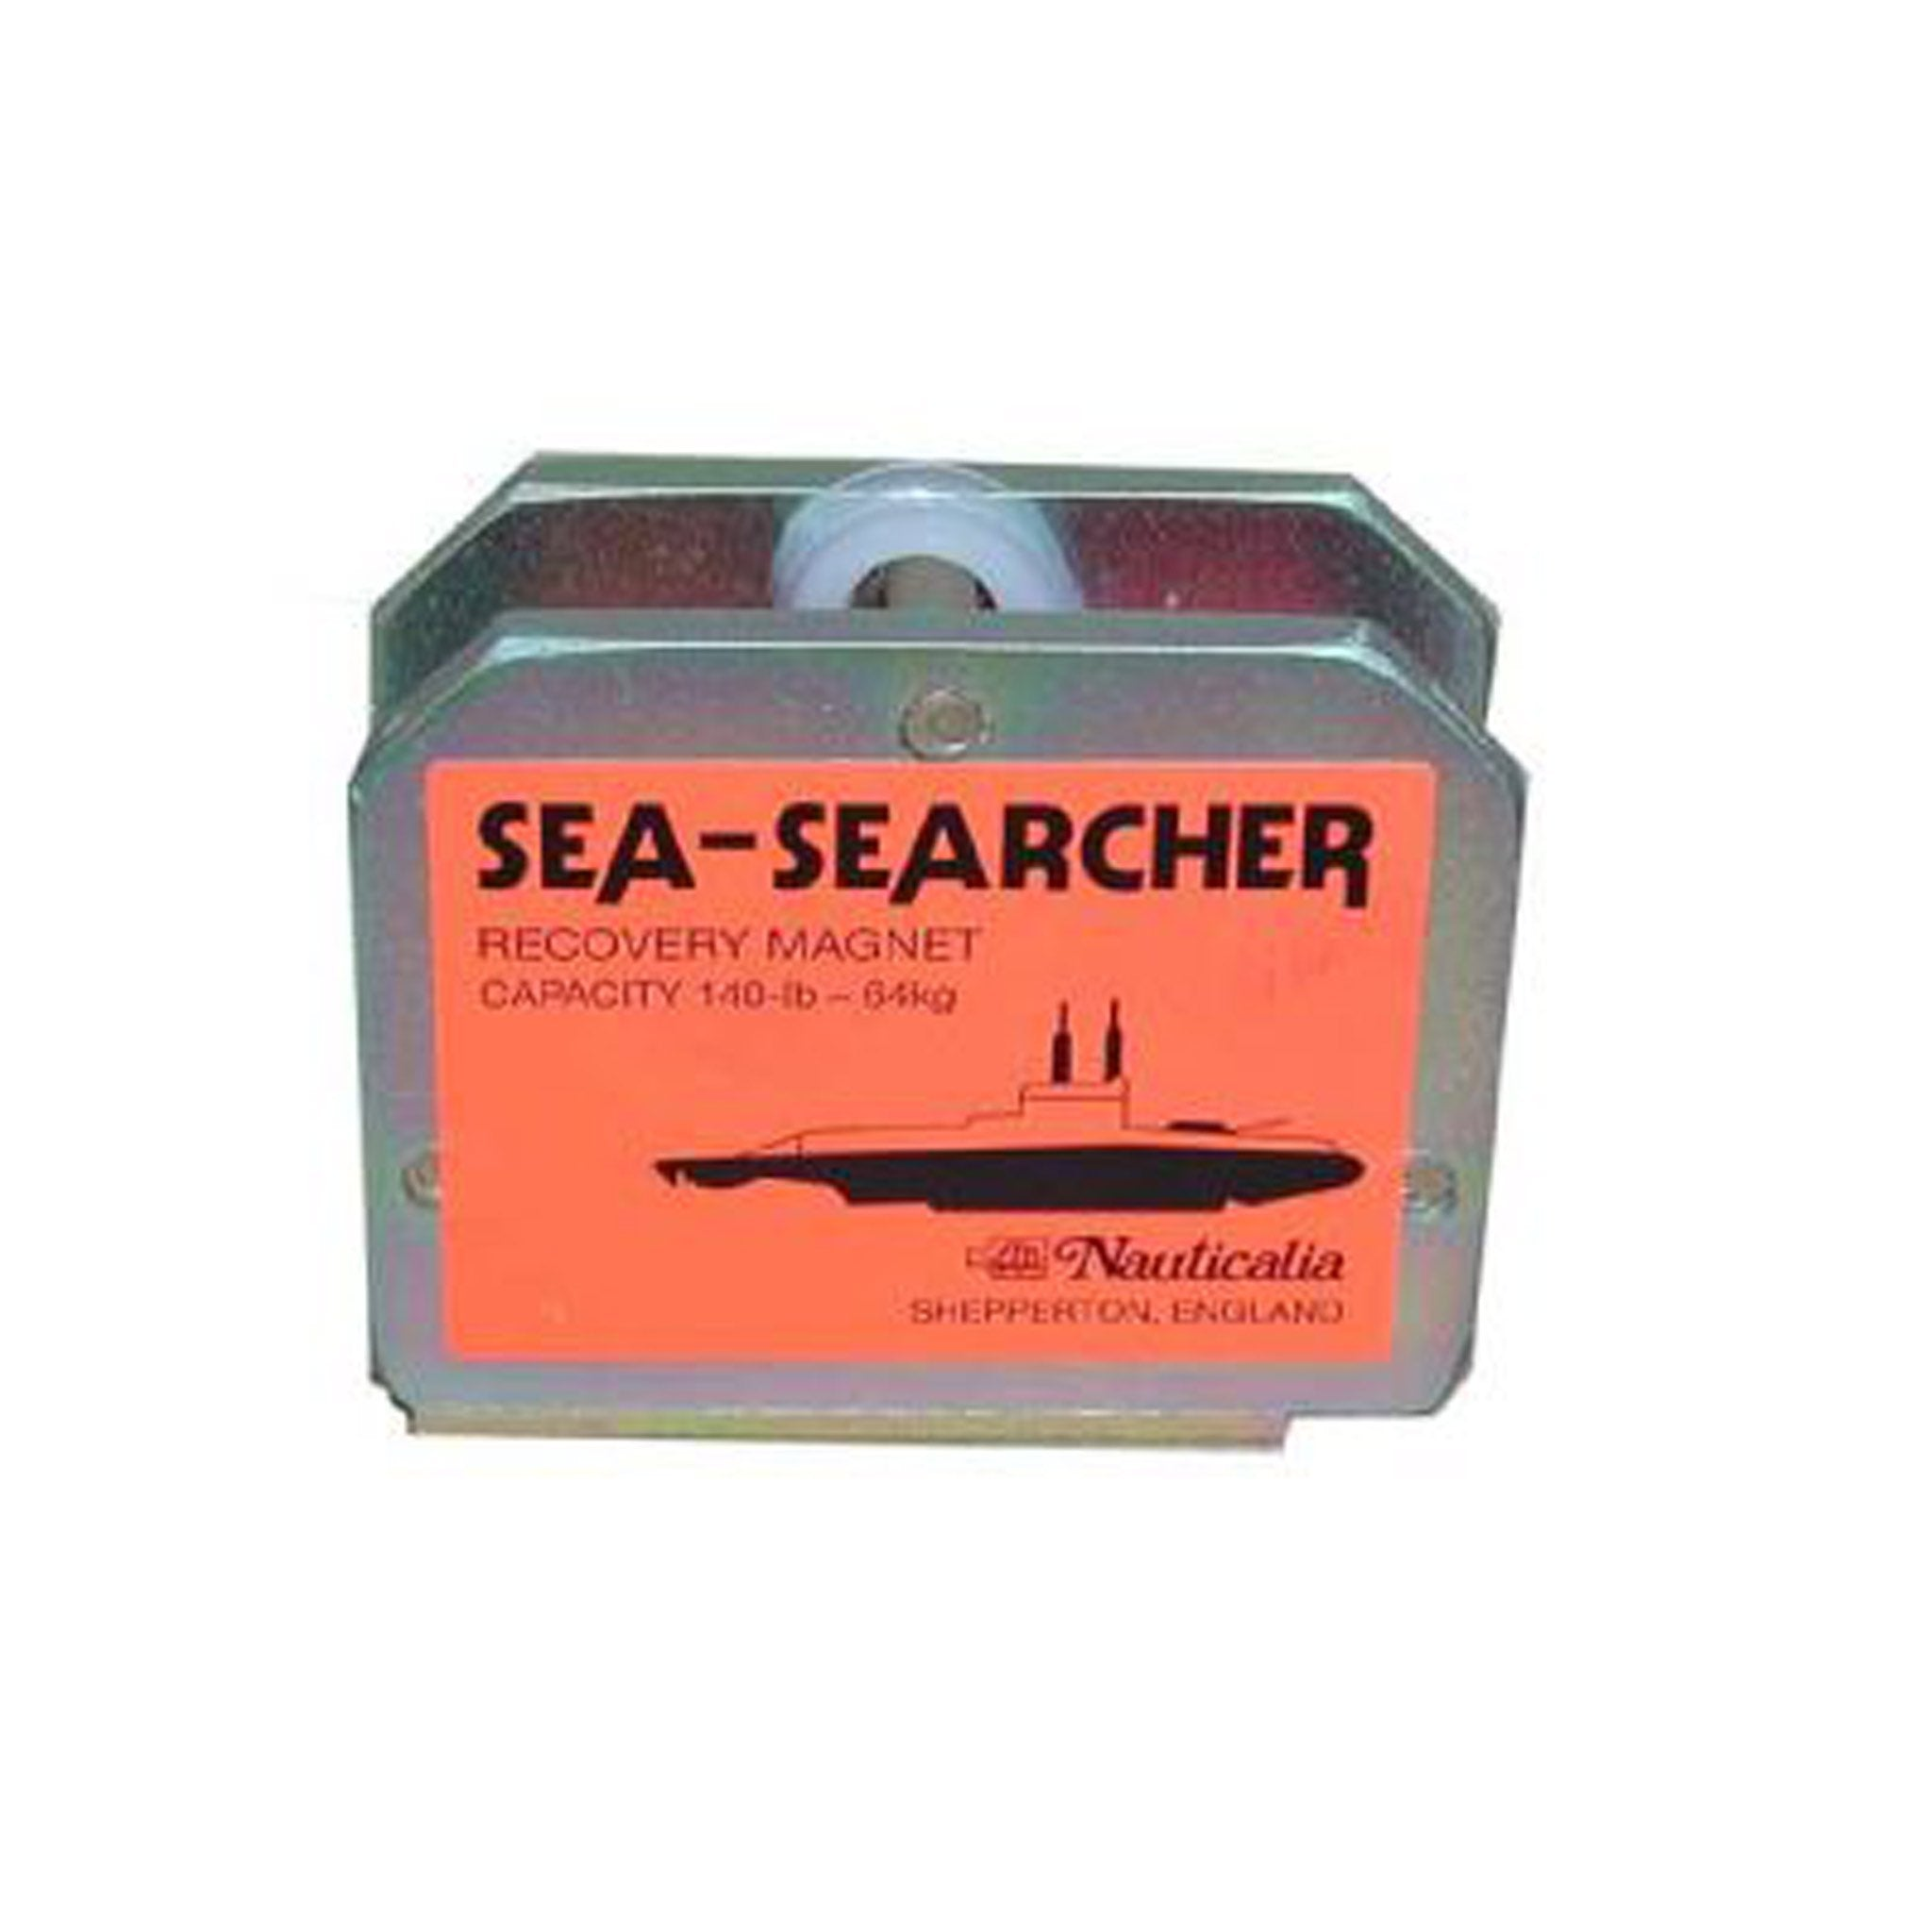 Sea Searcher Recovery Magnet - Arthur Beale